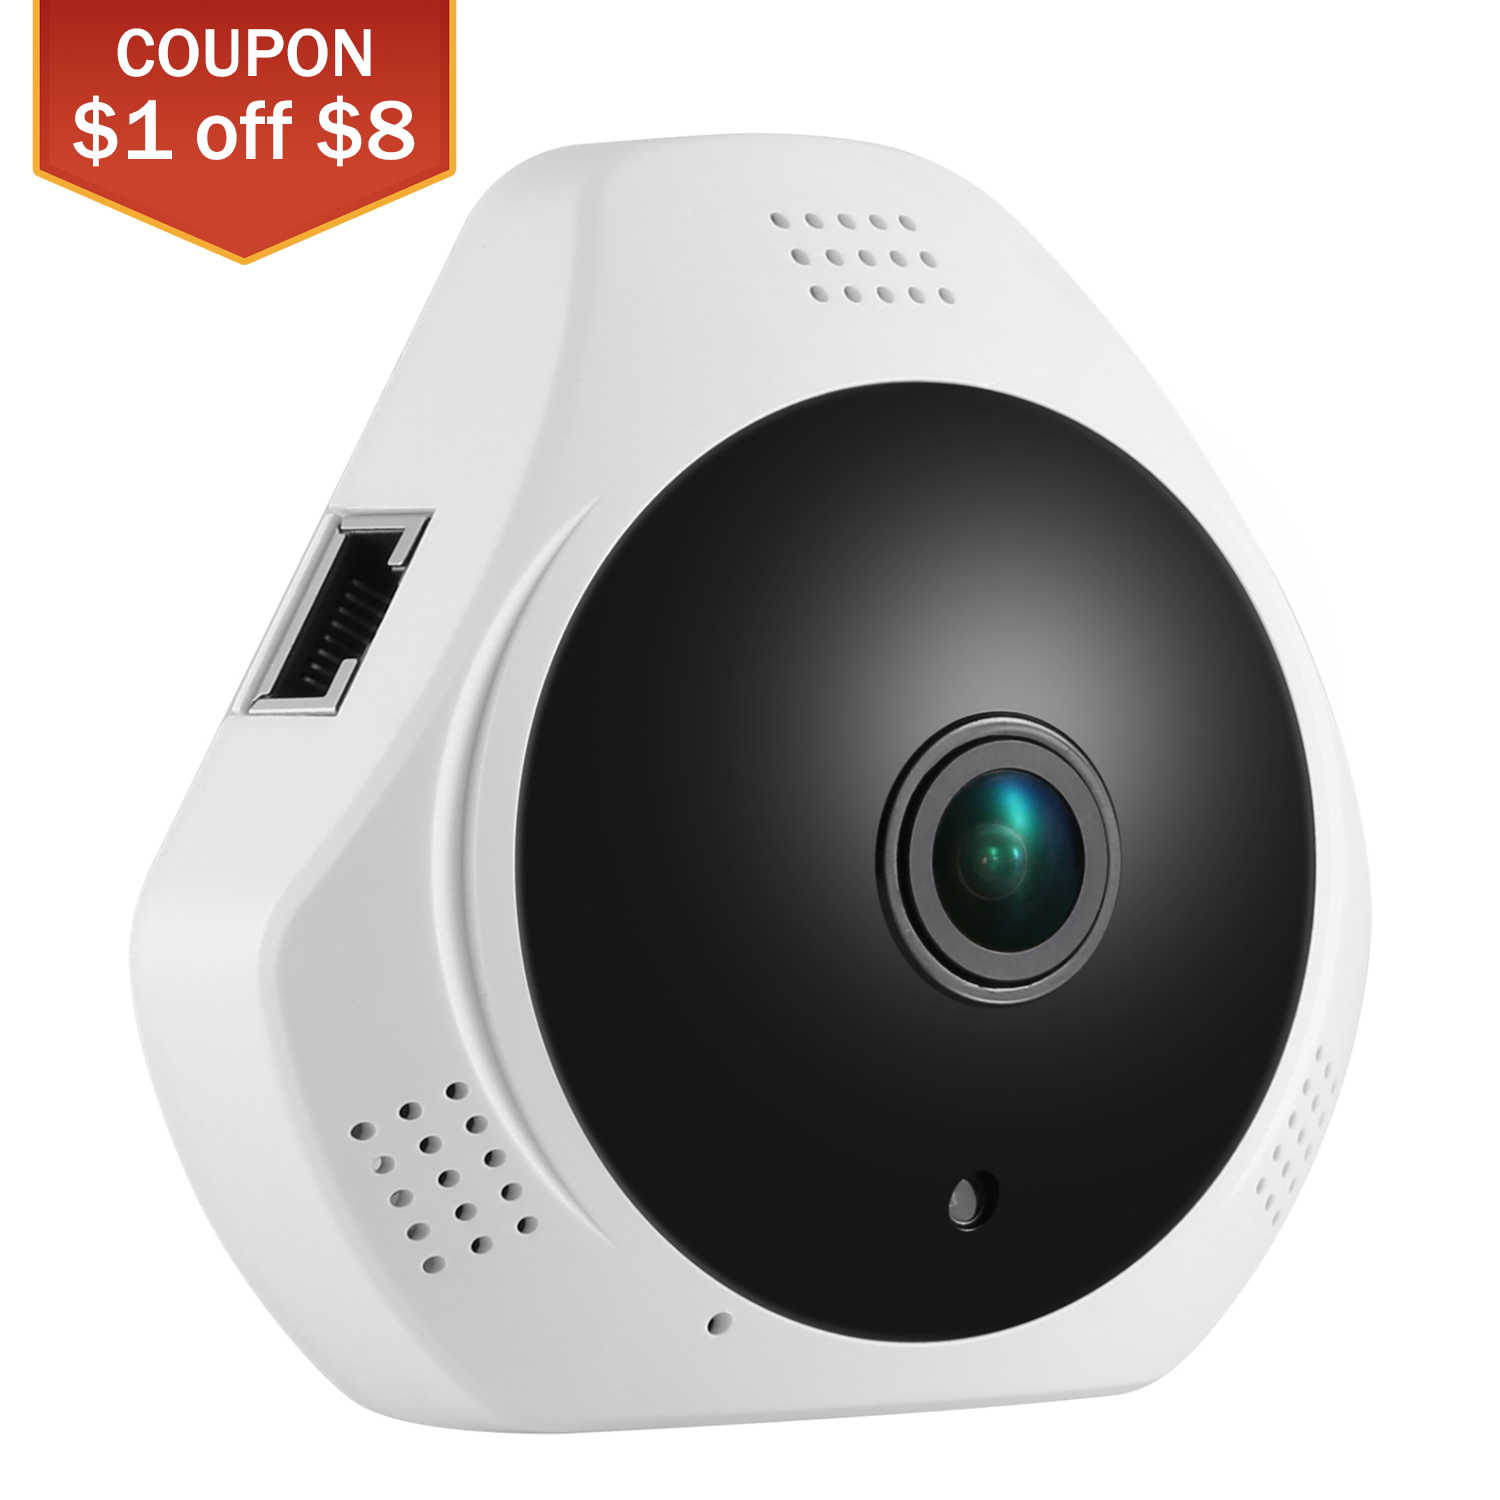 SANNCE 360 Graden Draadloze Panoramische Camera MINI 960 P Network Wifi Fisheye Beveiliging IP Camera WIFI 1.3MP Video Ingebouwde MICROFOON